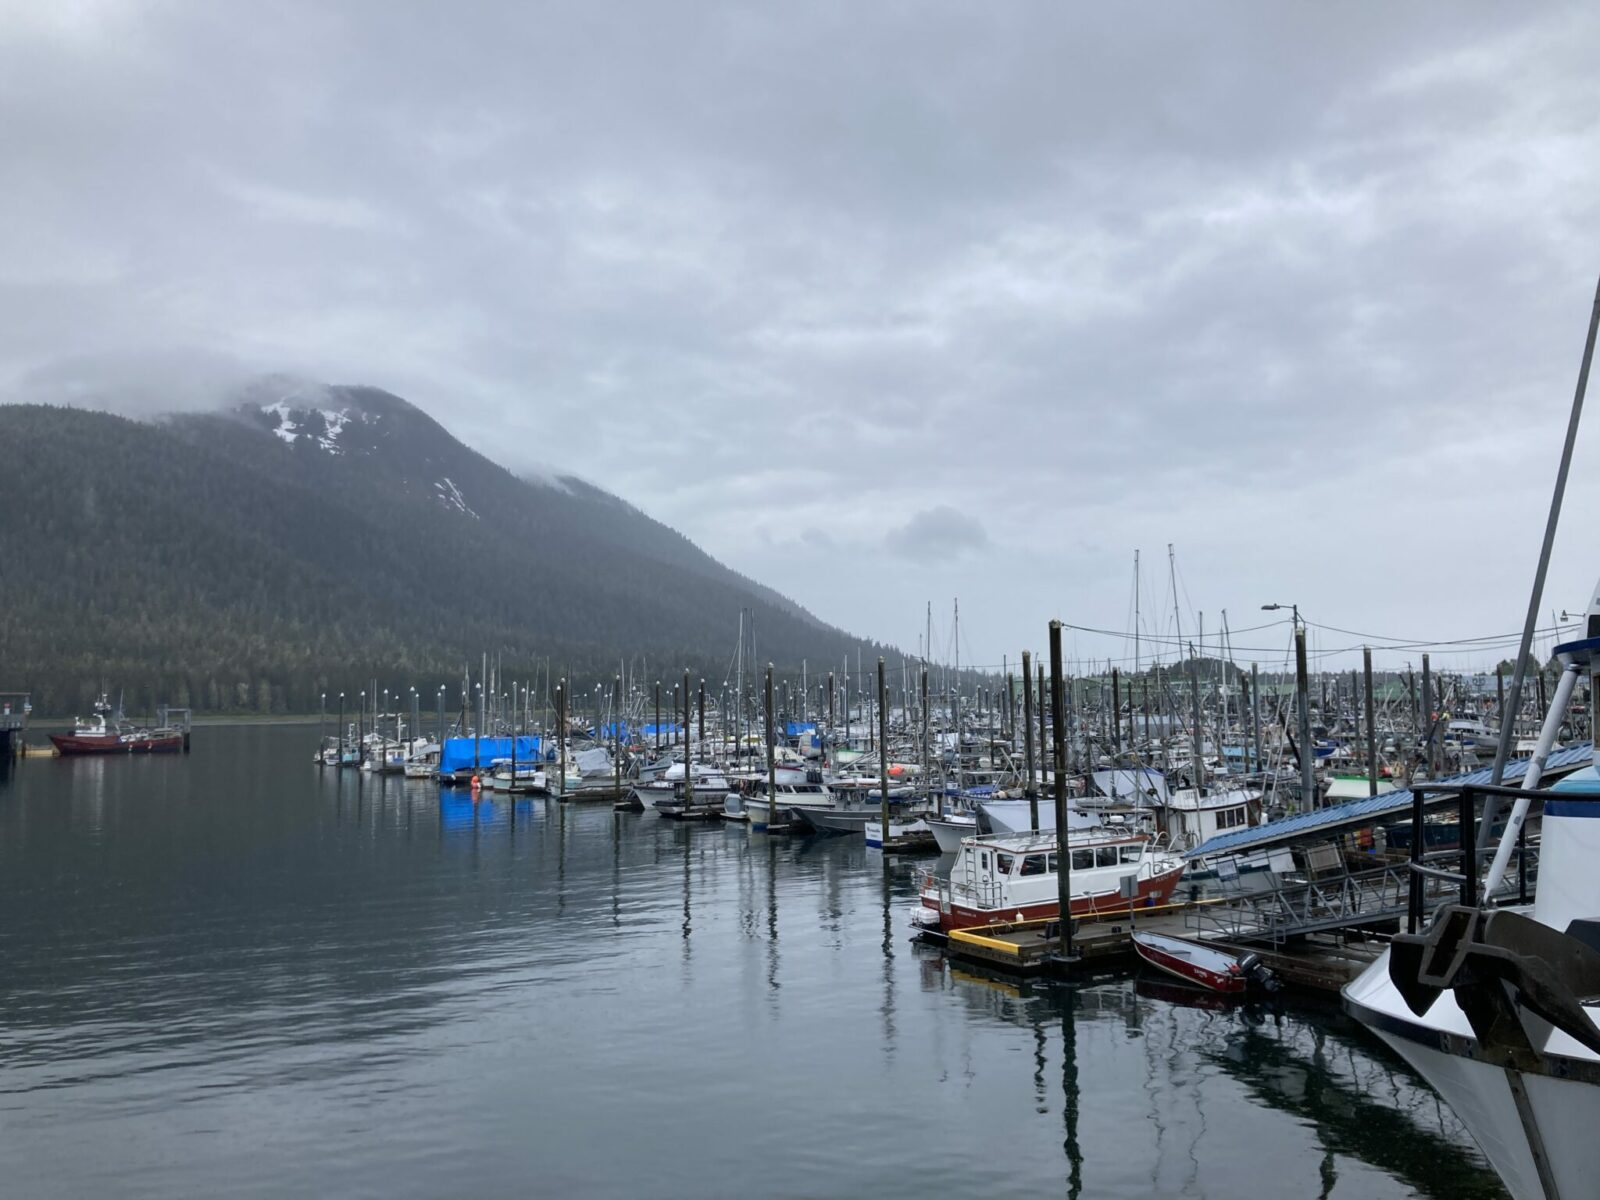 Petersburg full of fishing boats on a cloudy and rainy day